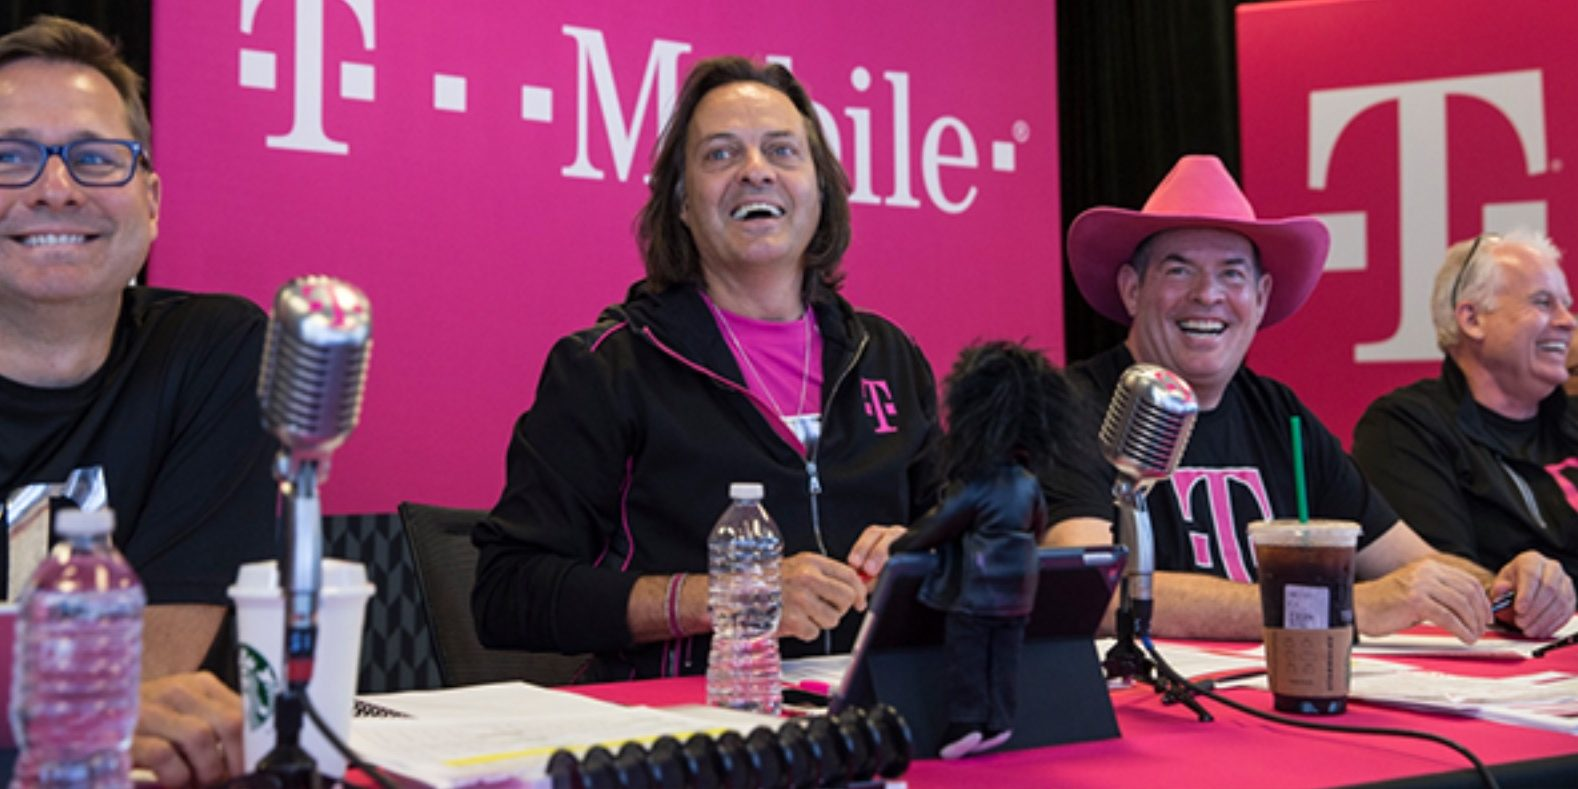 T Mobile Ceo Legere Will Be Replaced By Coo Sievert In May 2020